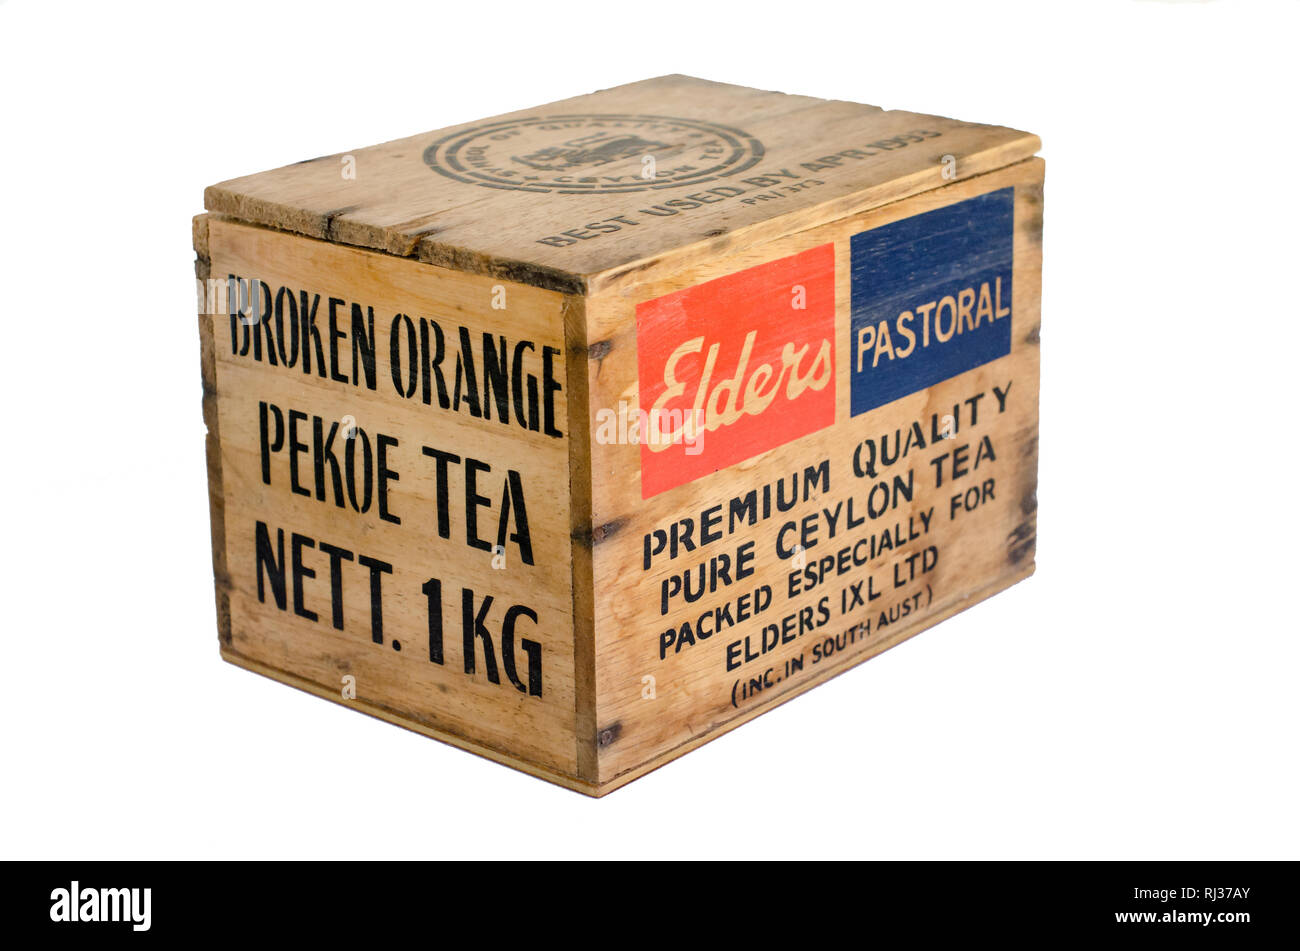 Small Wooden Box previously containing 1kg of Pure Ceylon